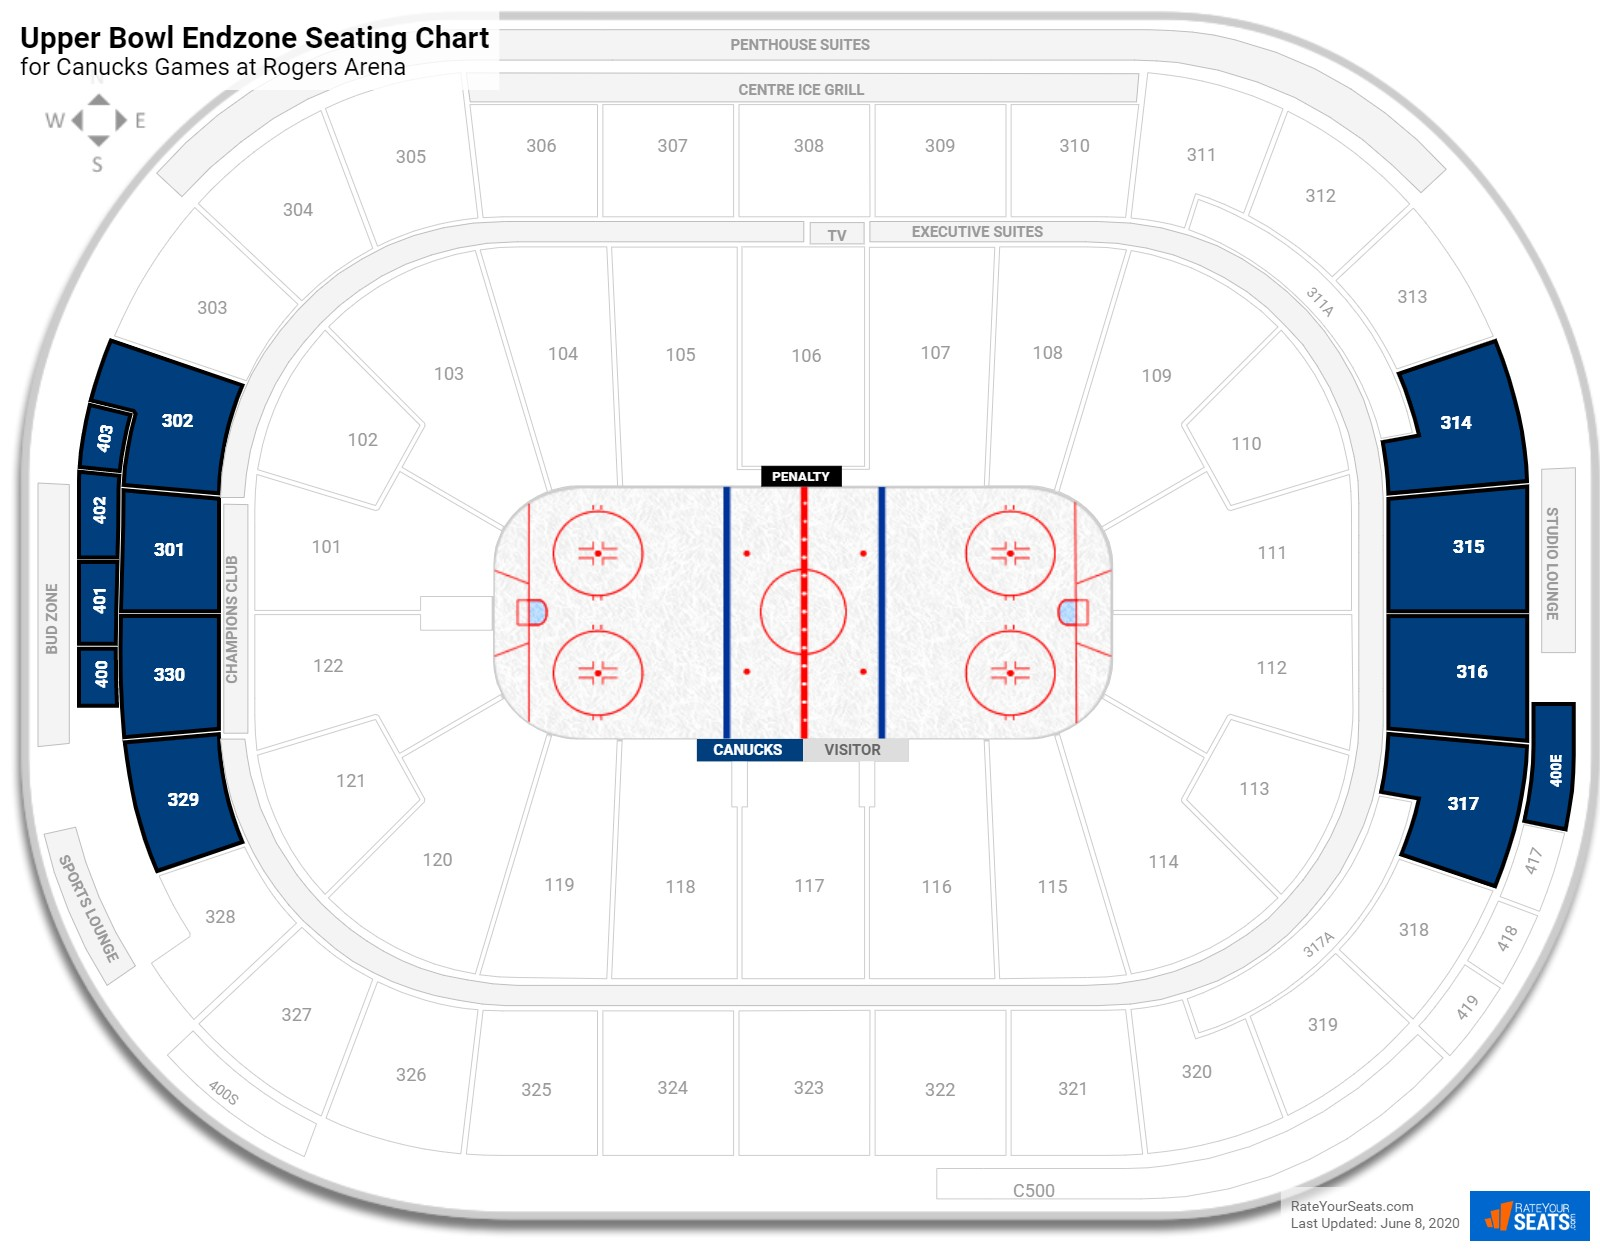 Rogers Arena Rogers Level Behind the Net seating chart